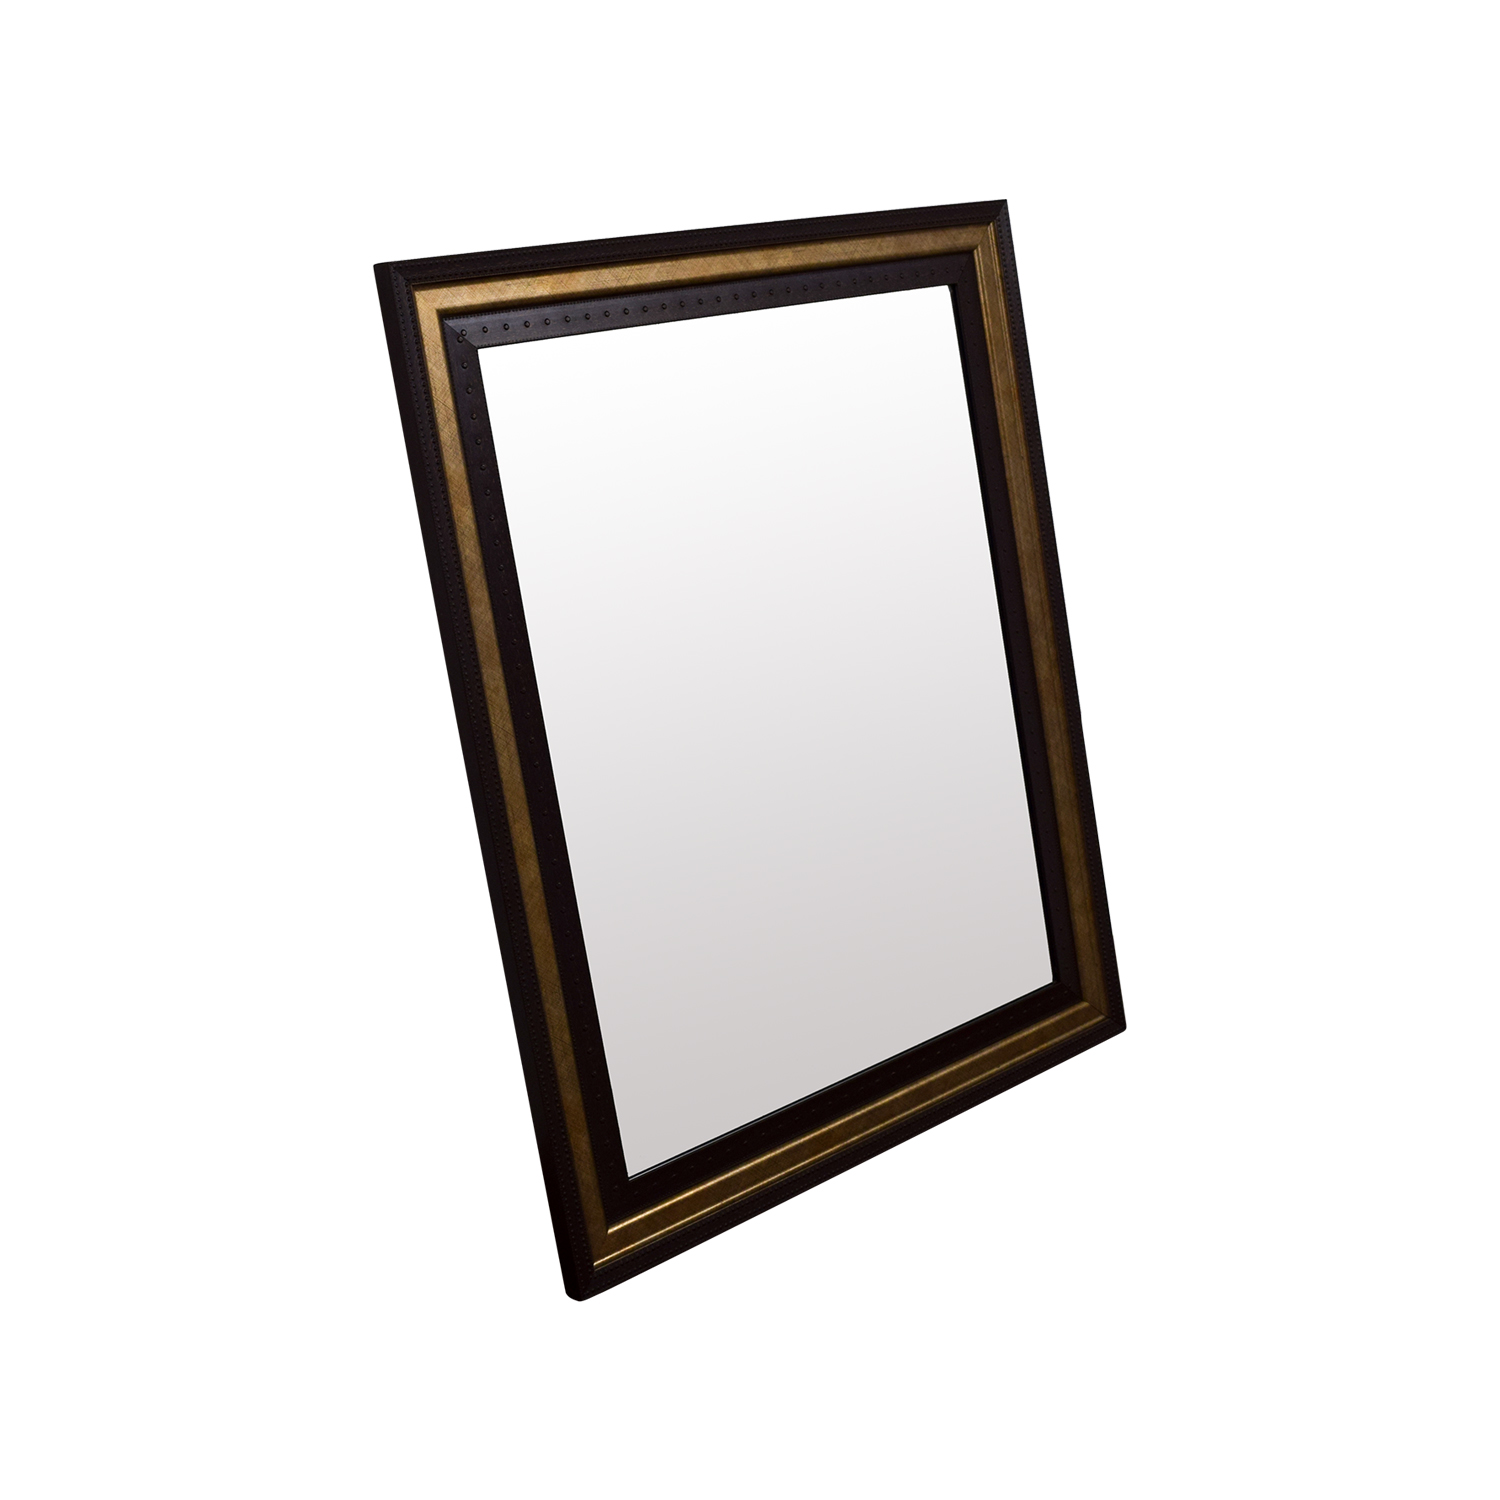 71 off mirror with gold and wood frame decor